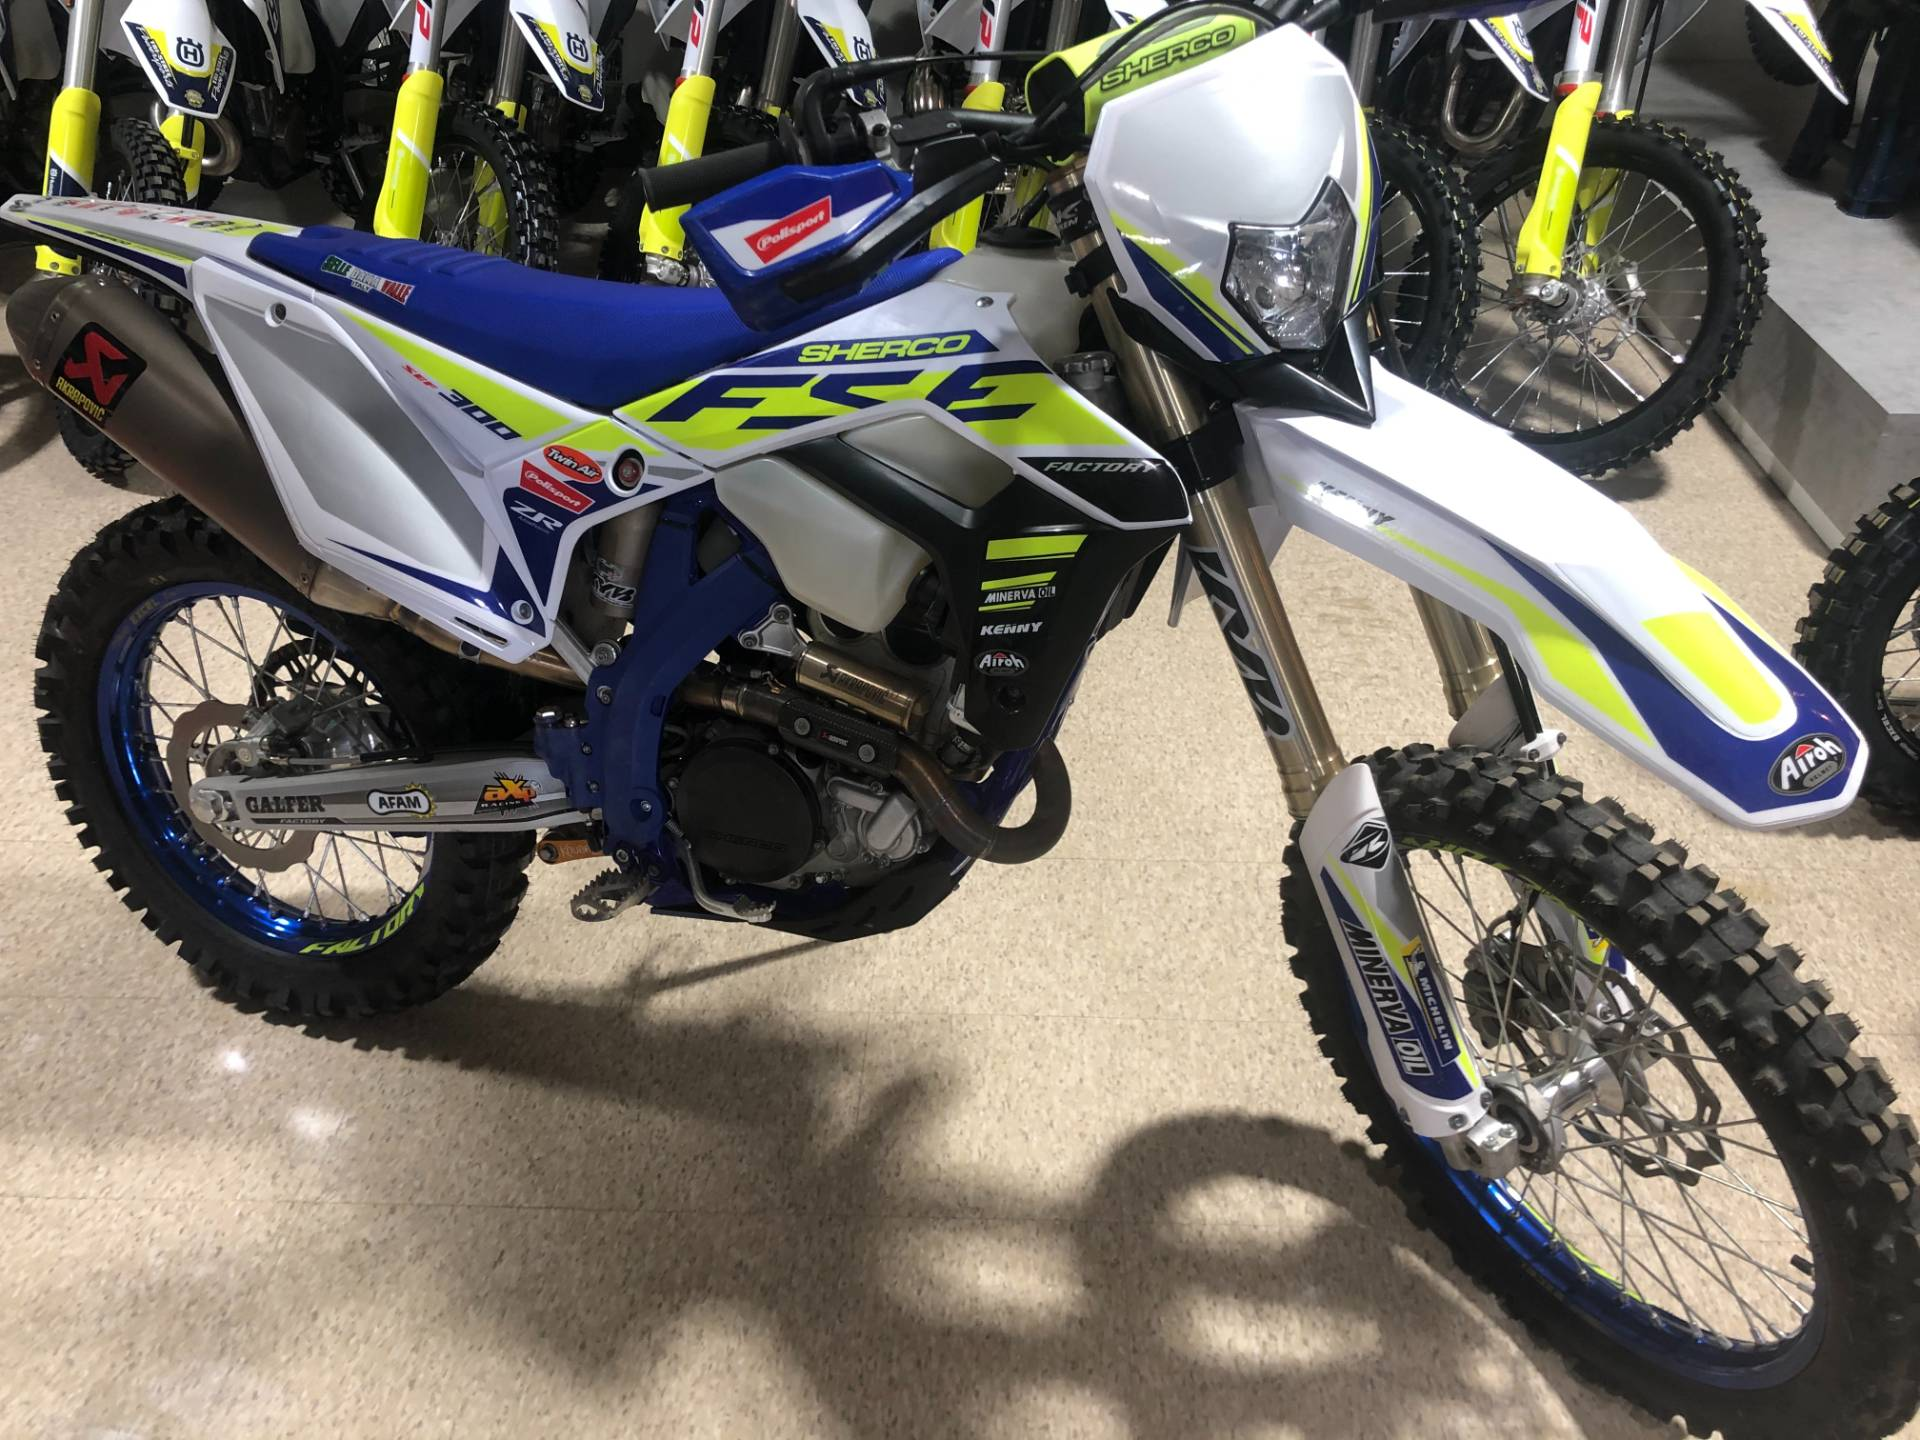 2020 Sherco 300 SEF Factory 4T in Slovan, Pennsylvania - Photo 1